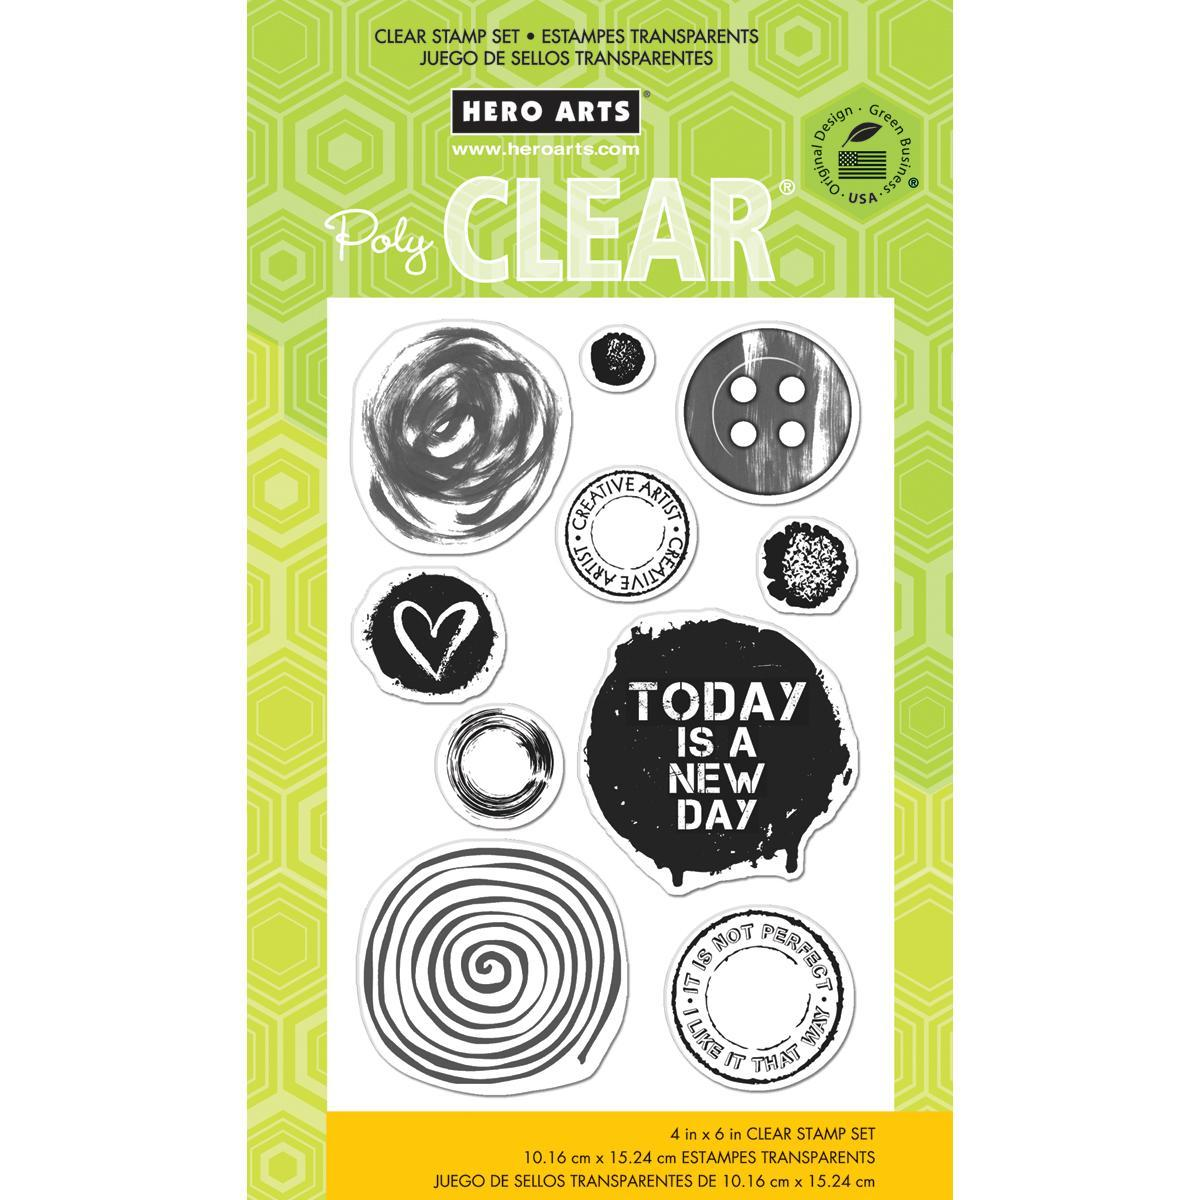 Hero Arts Clear Stamp 4 X6 Sheet - Not Perfect